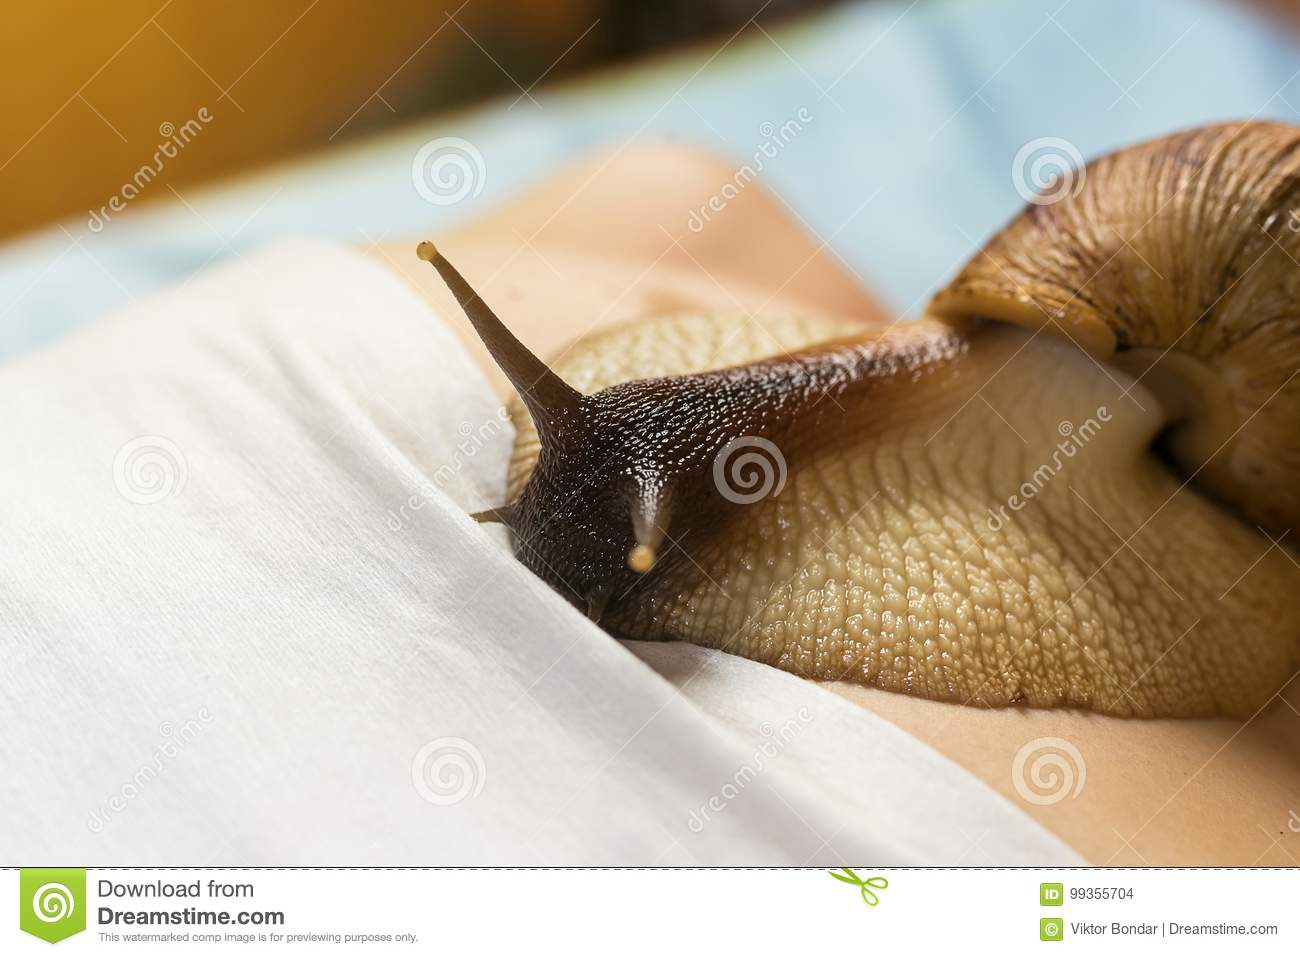 Achatina snails in cosmetology: how to use 67